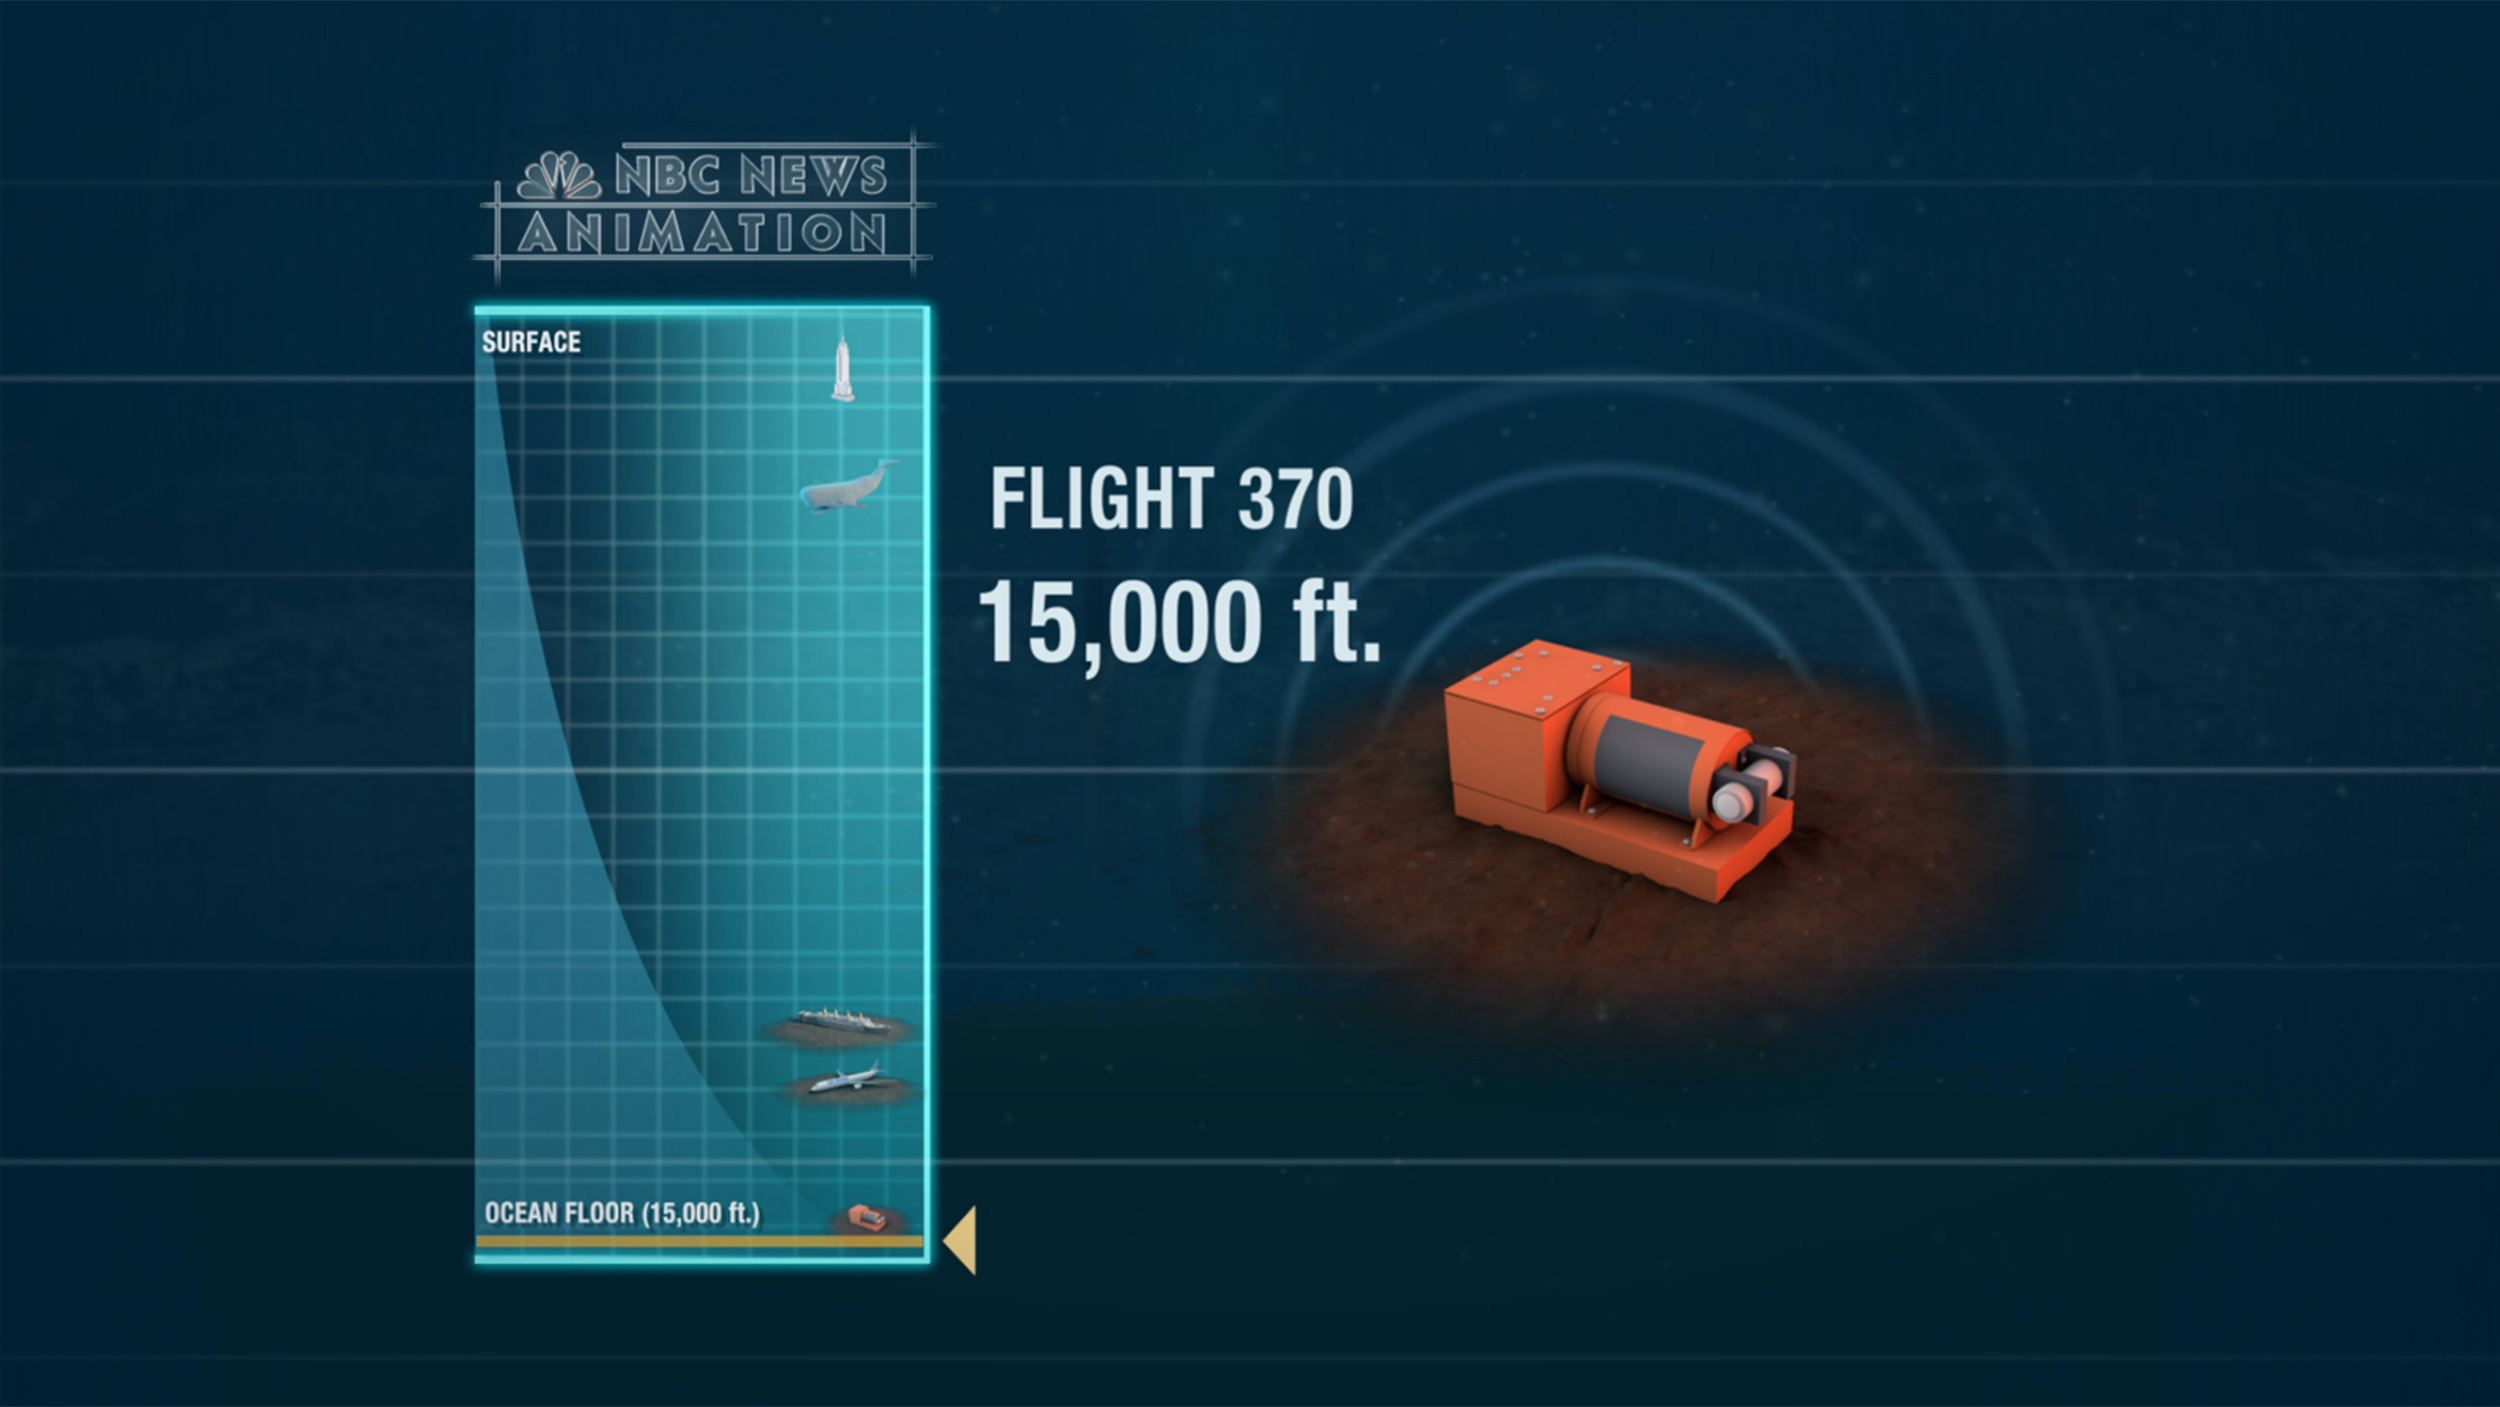 How deep could the missing plane be? Pings provide MH370 clues